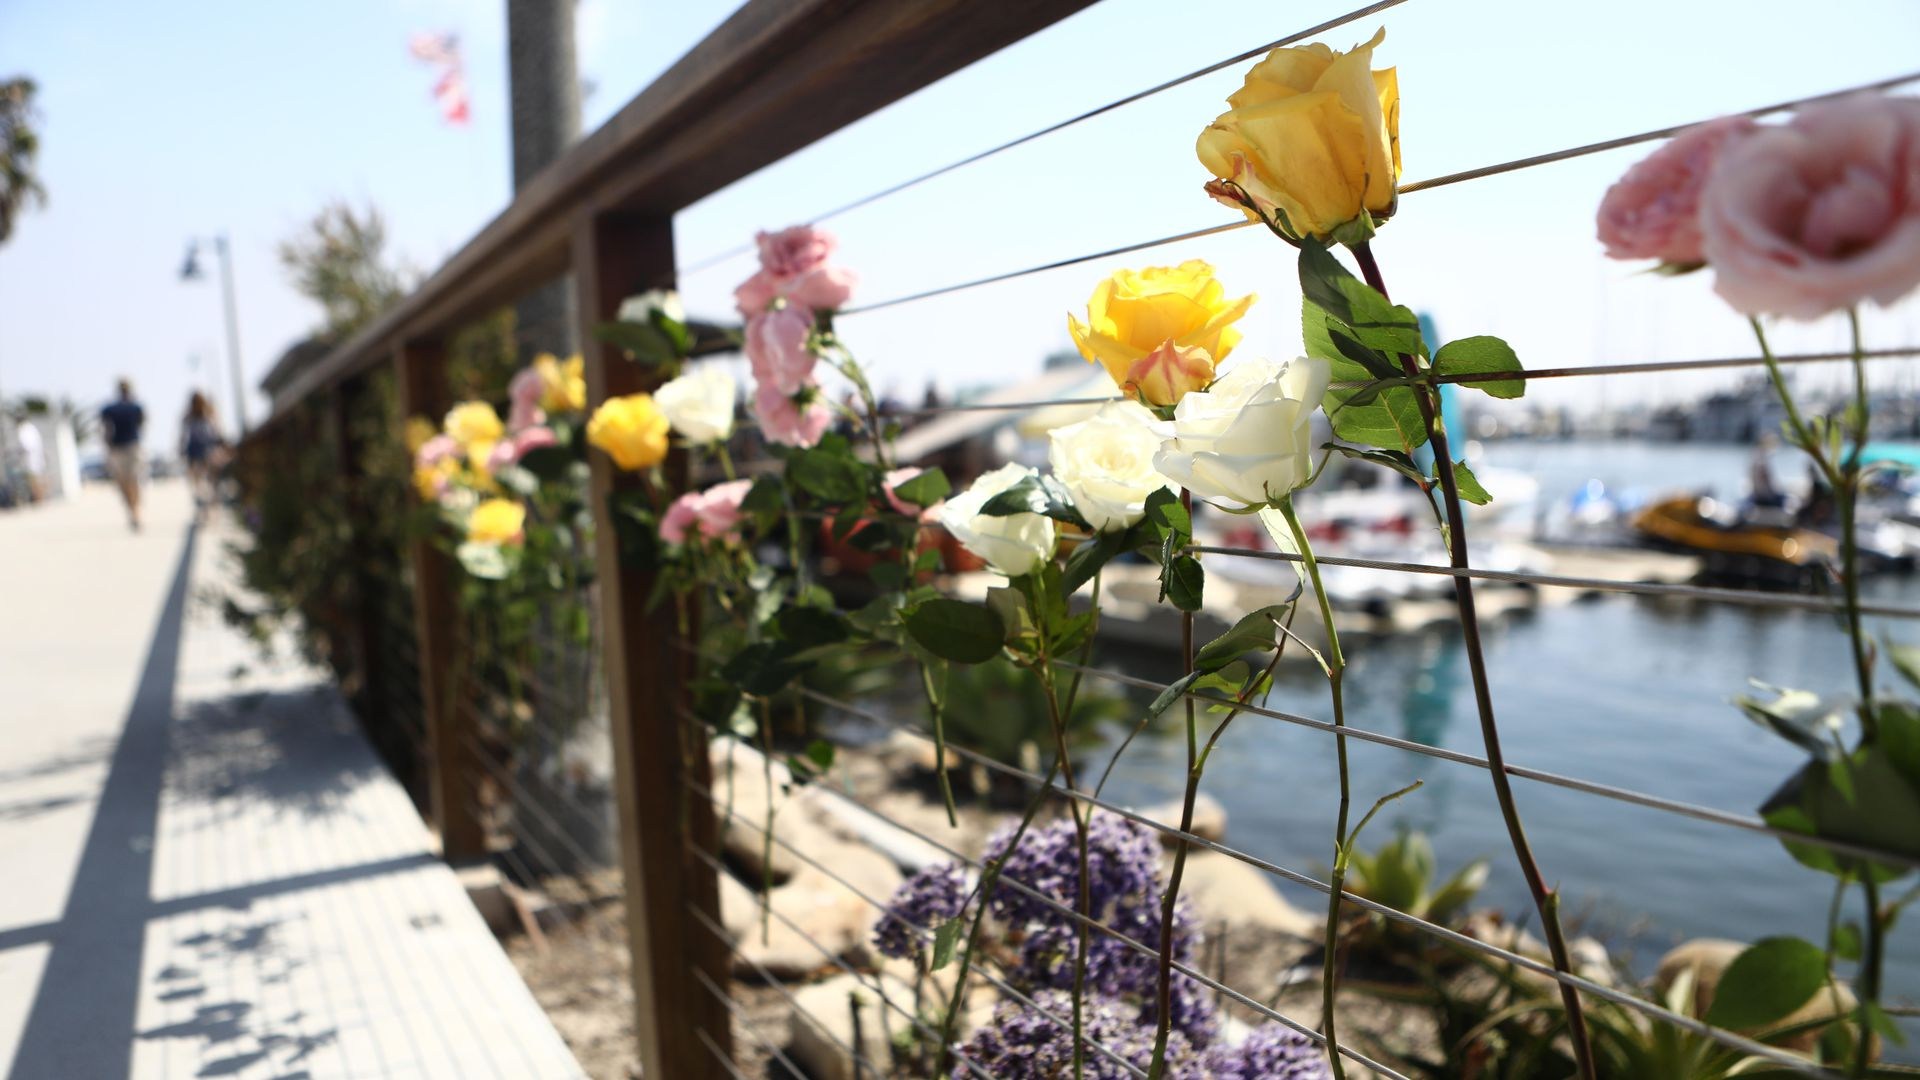 Flowers are left on a railway outside of Sea Landing, where a commercial scuba boat departed before catching fire, on September 2